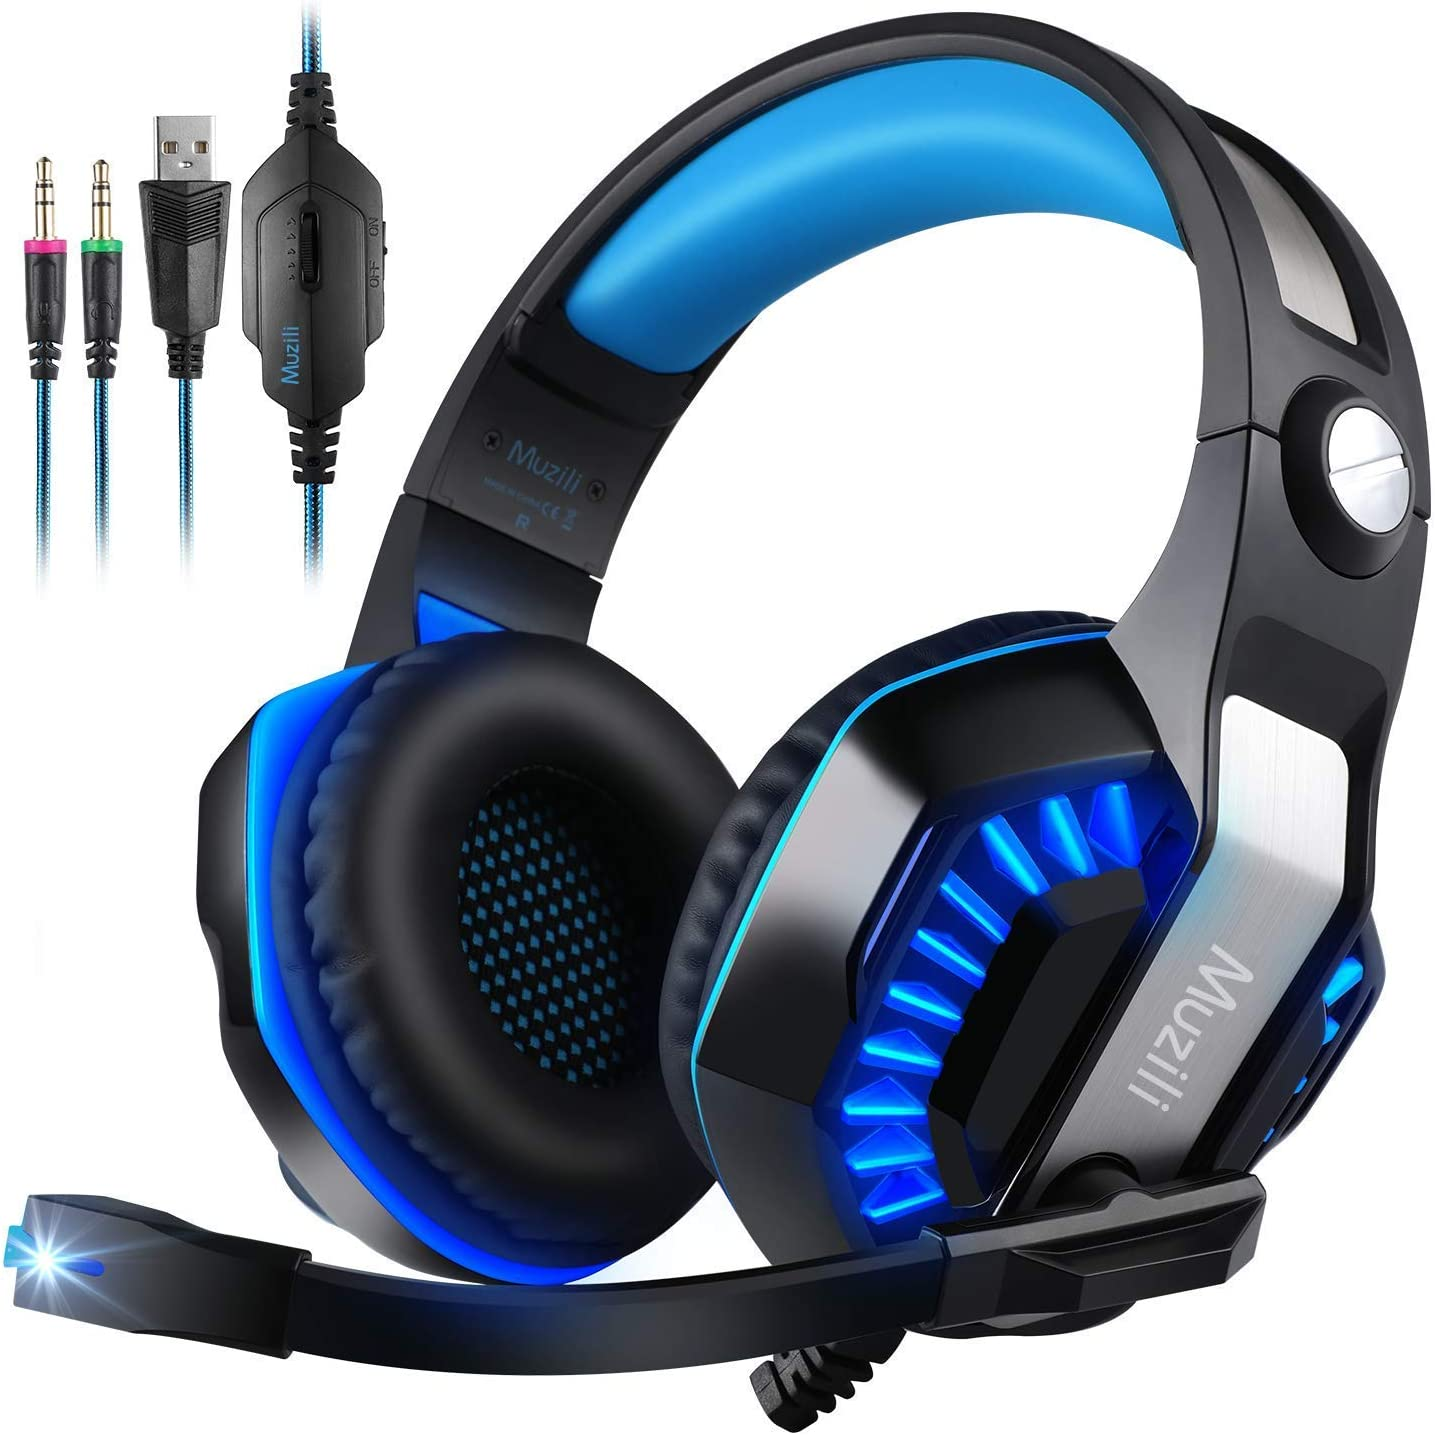 Deep Bass Muzili Gaming Headset, 50mm Driver Units for 7.1 Surround Sound Stereo Hi-Fi for PC, PS4, Xbox One,Mobile Phone, Noise-Cancelling Headset with Mic, LED Lights, Soft Memory Earmuffs